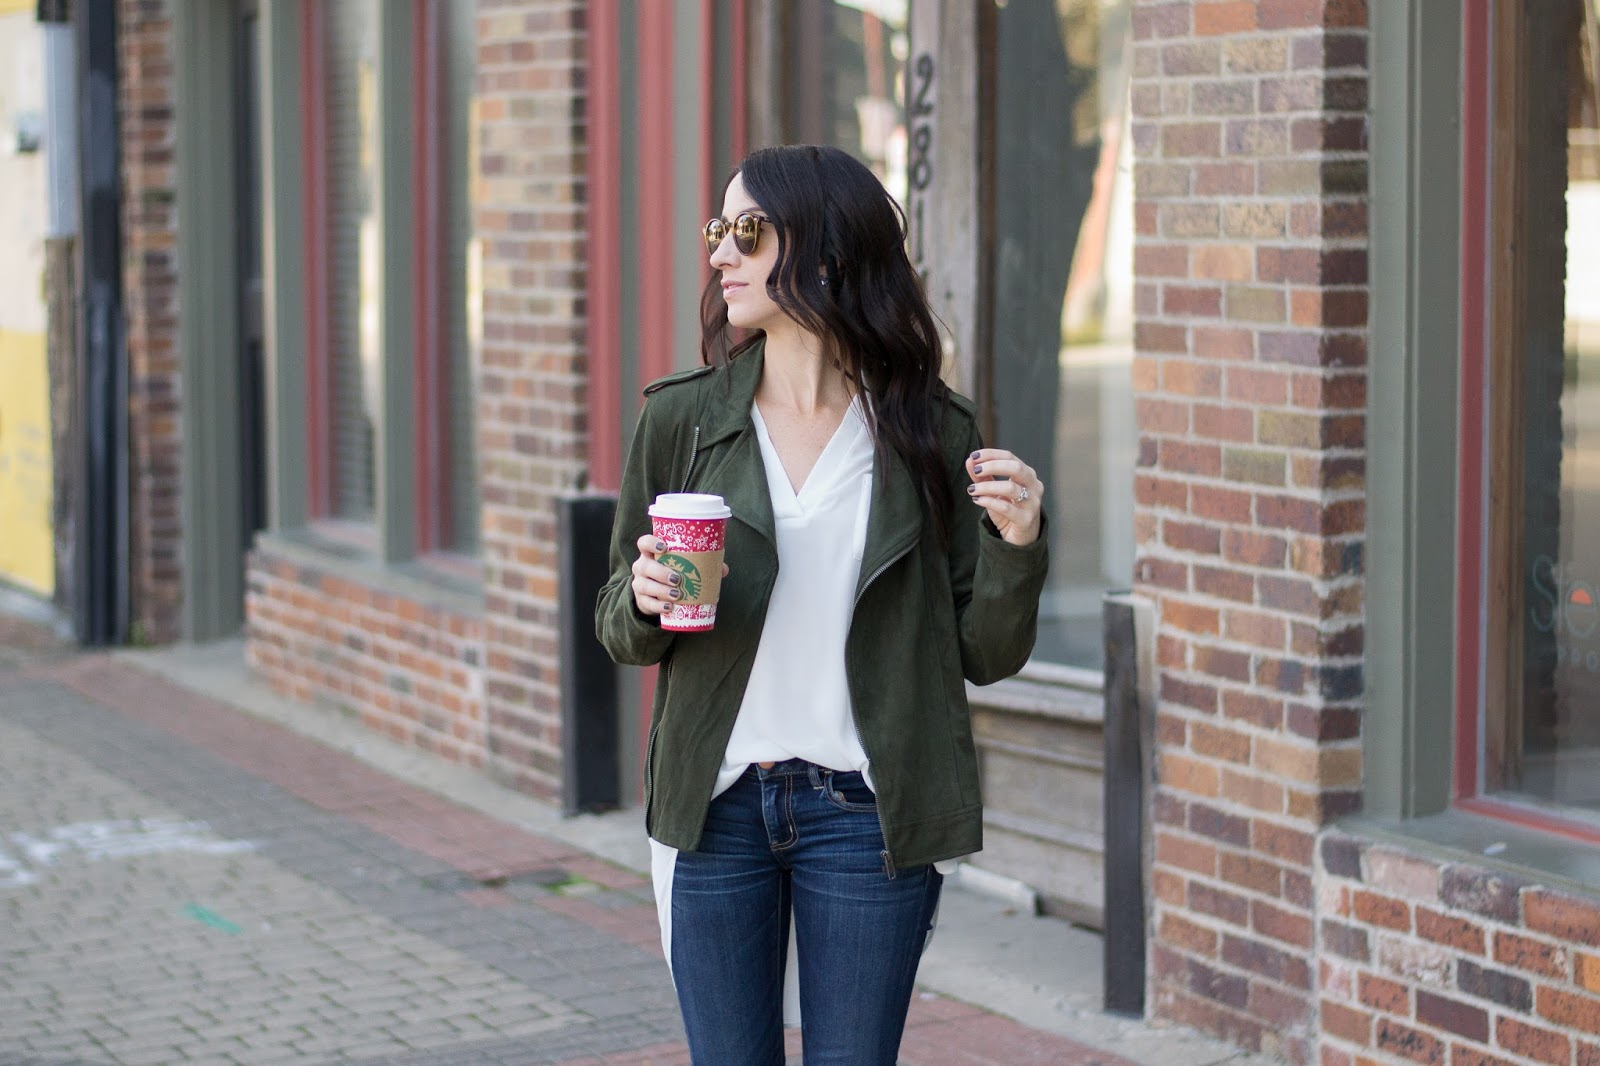 Casual Fall Style in Moto Jacket, booties and Ray bans